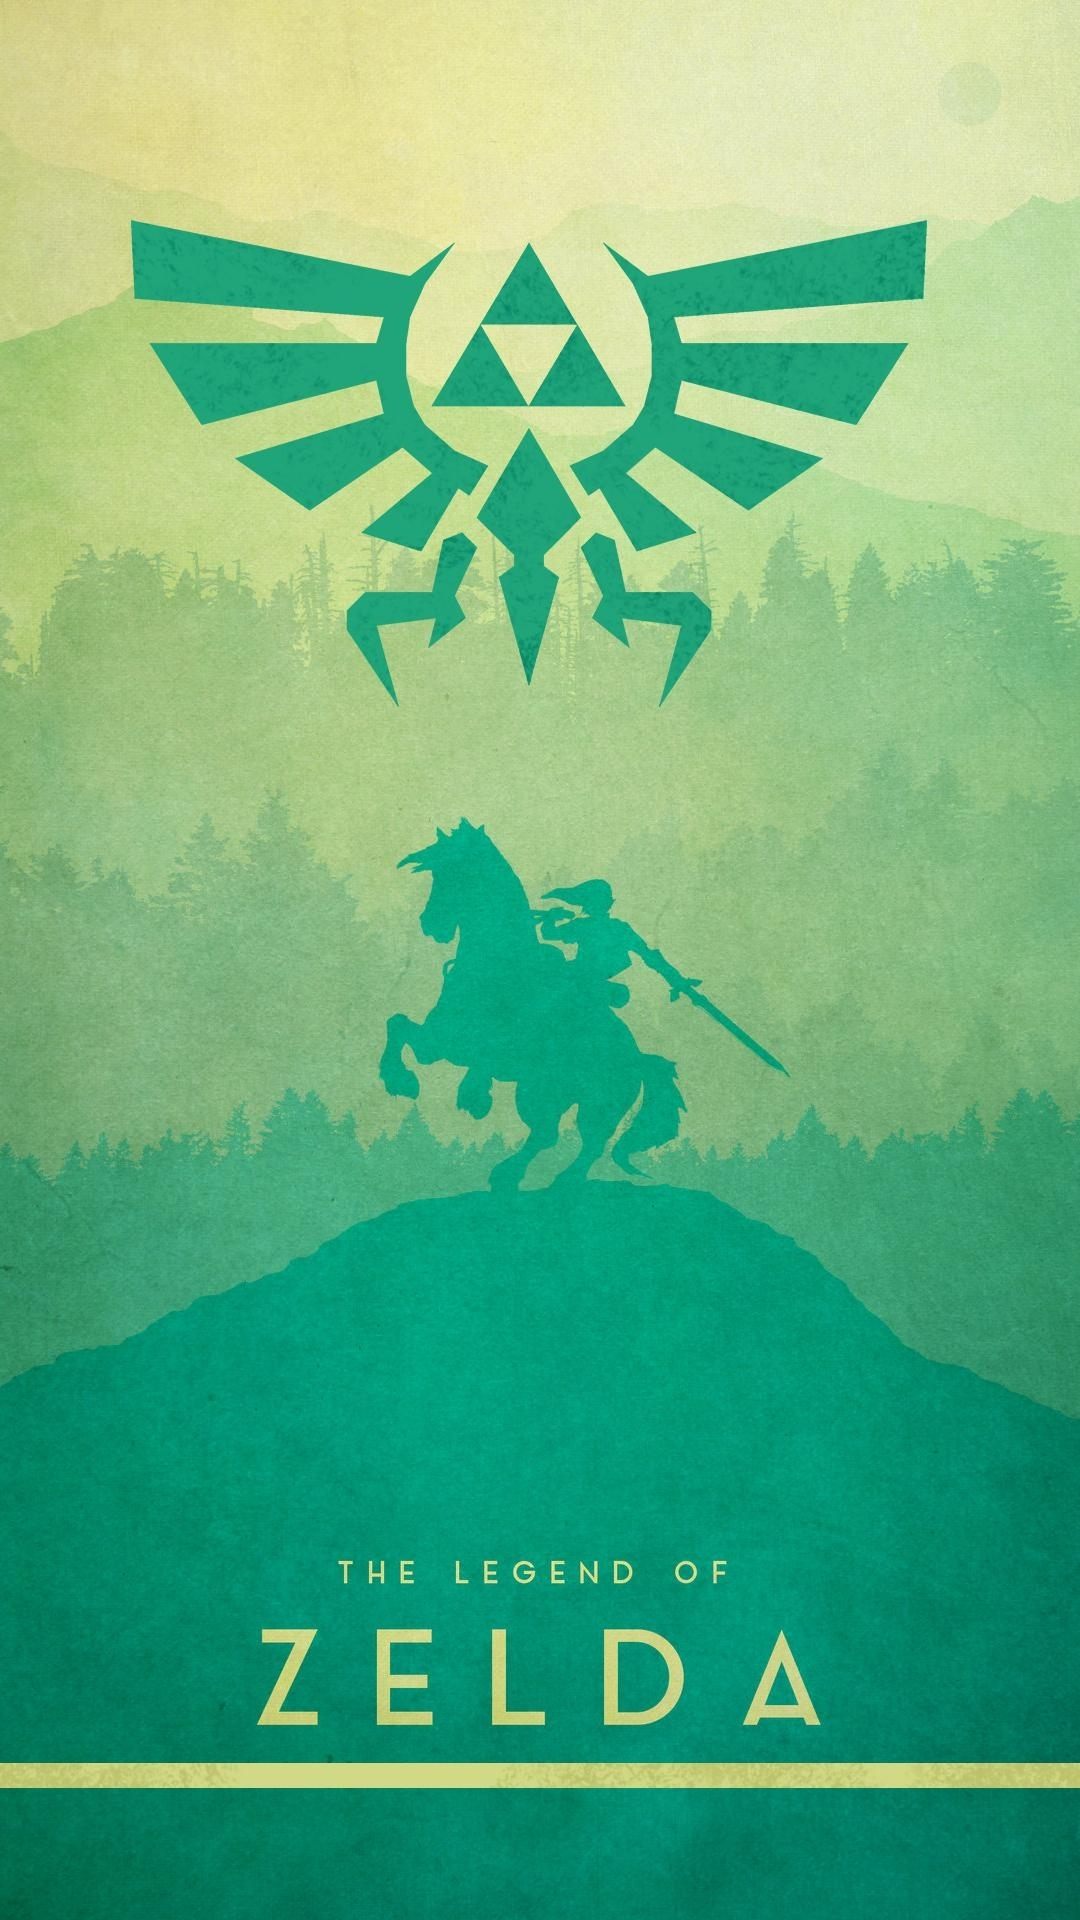 the legend of zelda - phone wallpaper [1080x1920] : zelda